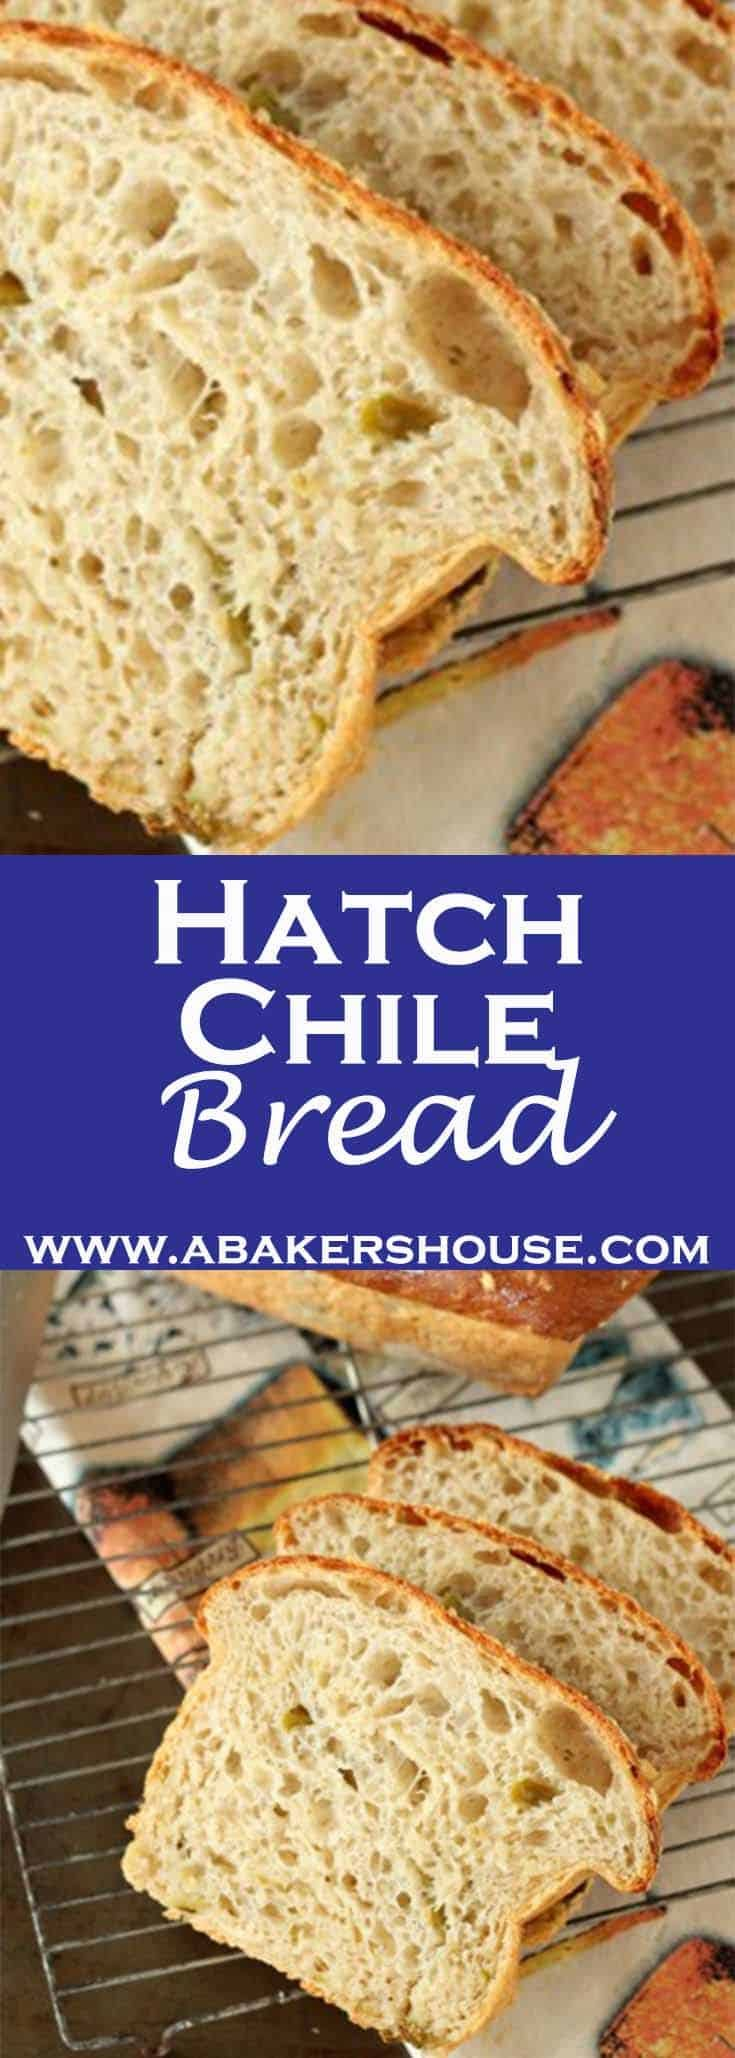 Hatch Chile Bread is a wonderful homemade bread recipe to use when baking with Hatch Chiles or any other chile for that matter. #homemadebread #hatchchiles #abakershouse #breadrecipe